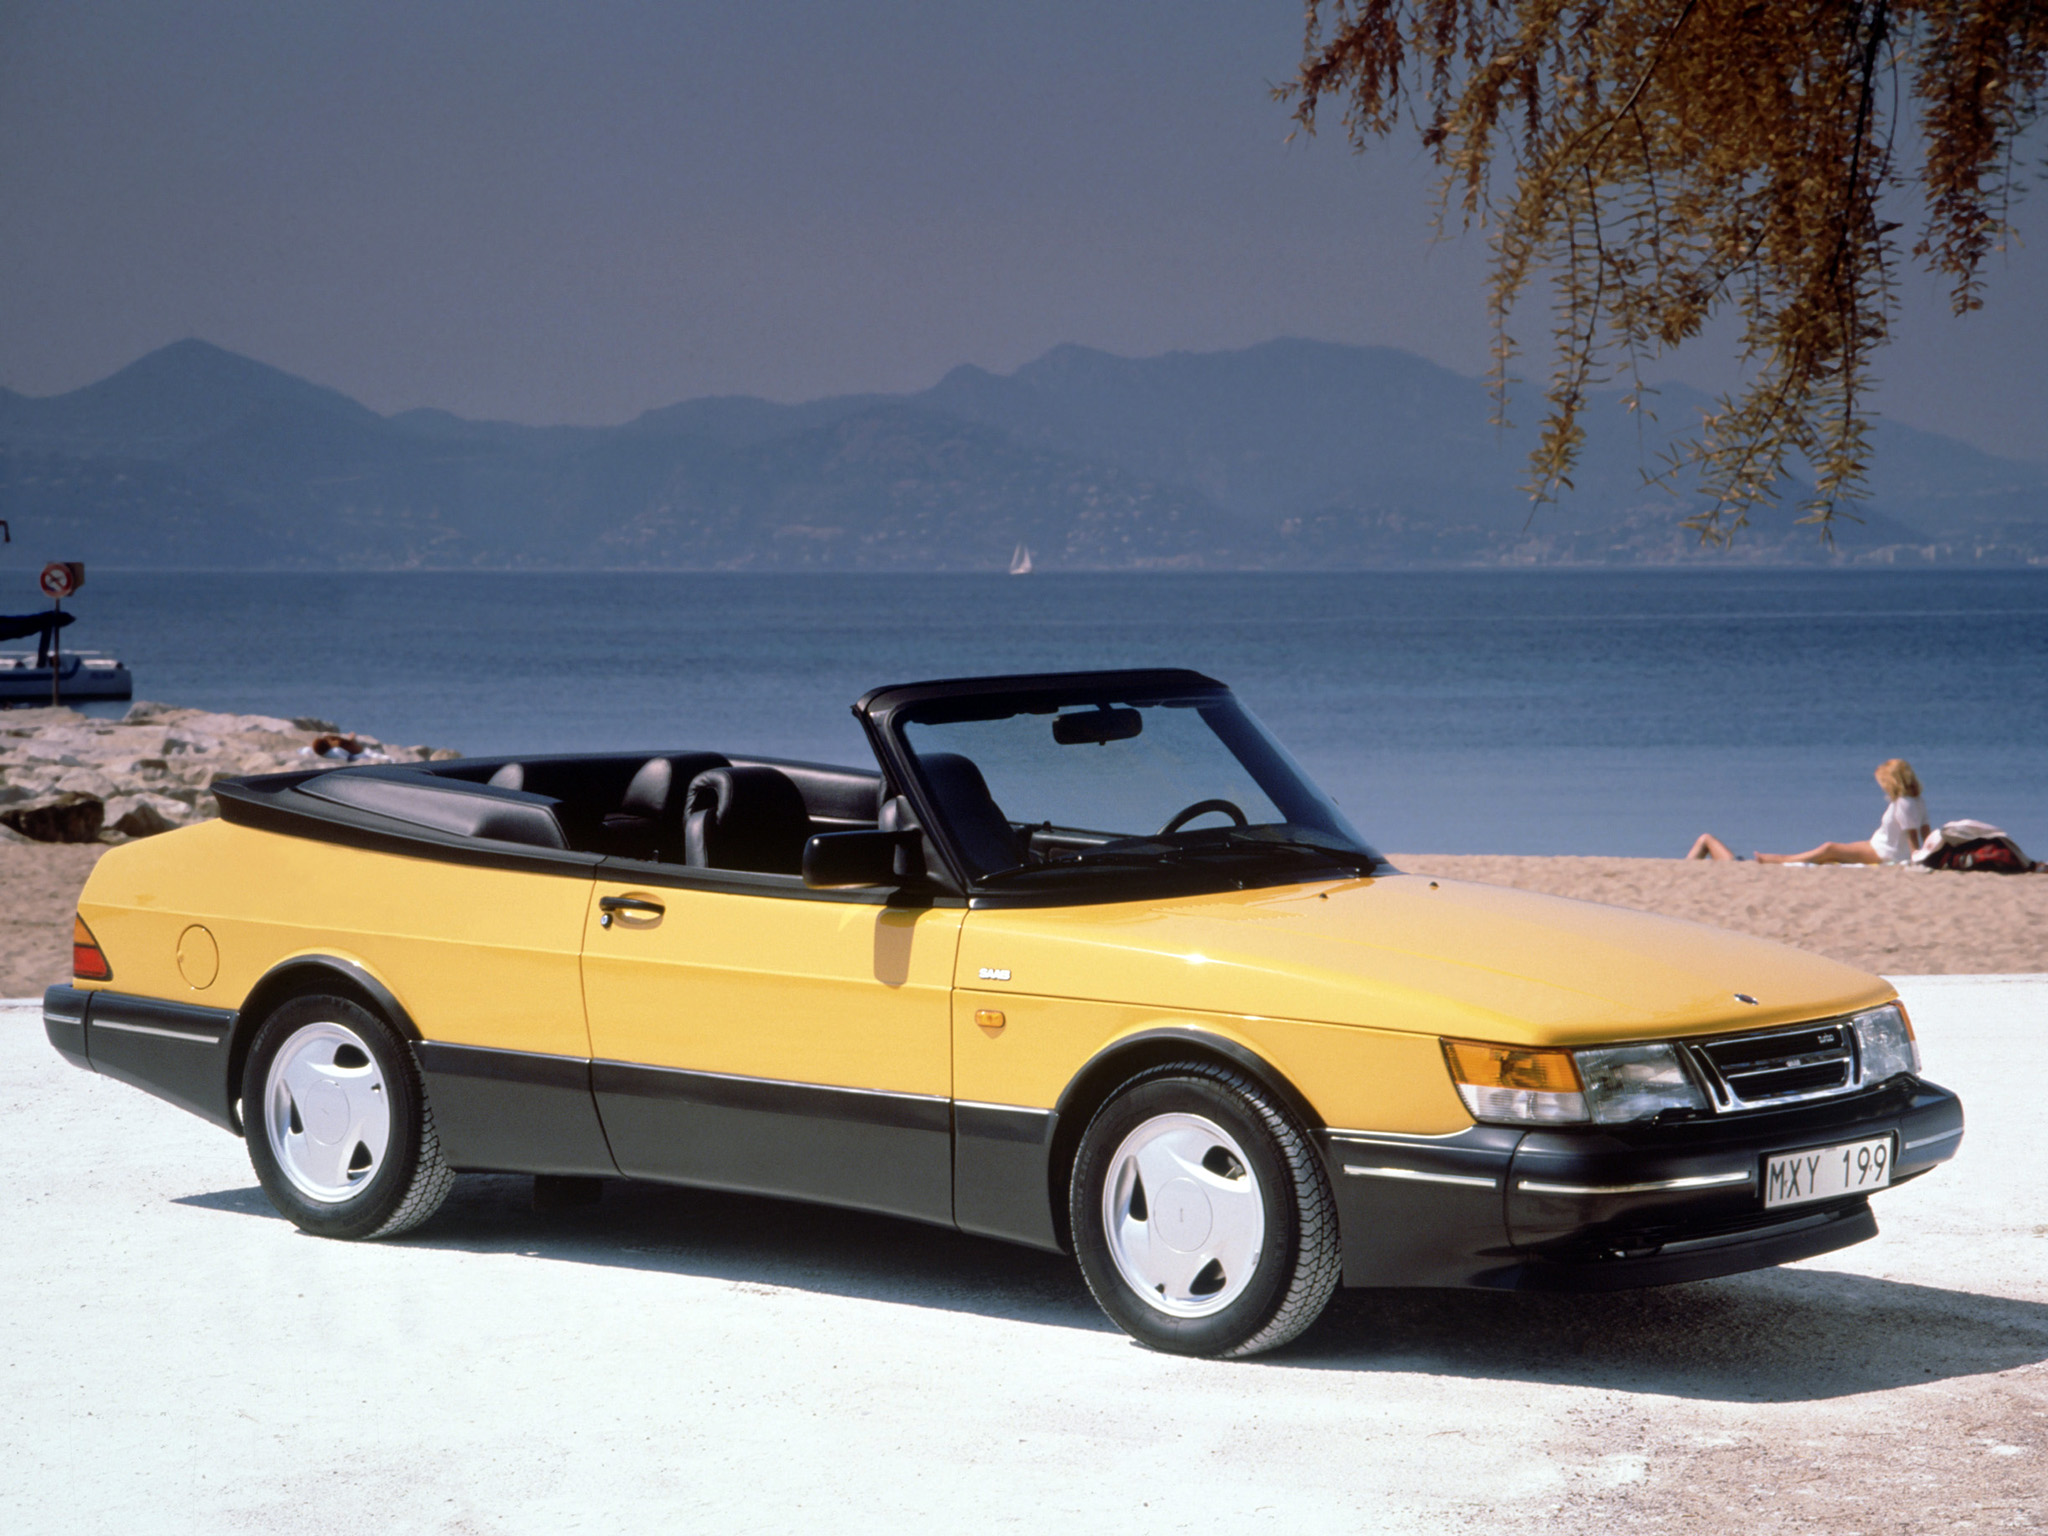 saab 900 cabrio scheda tecnica e prezzo dell 39 usato auto. Black Bedroom Furniture Sets. Home Design Ideas